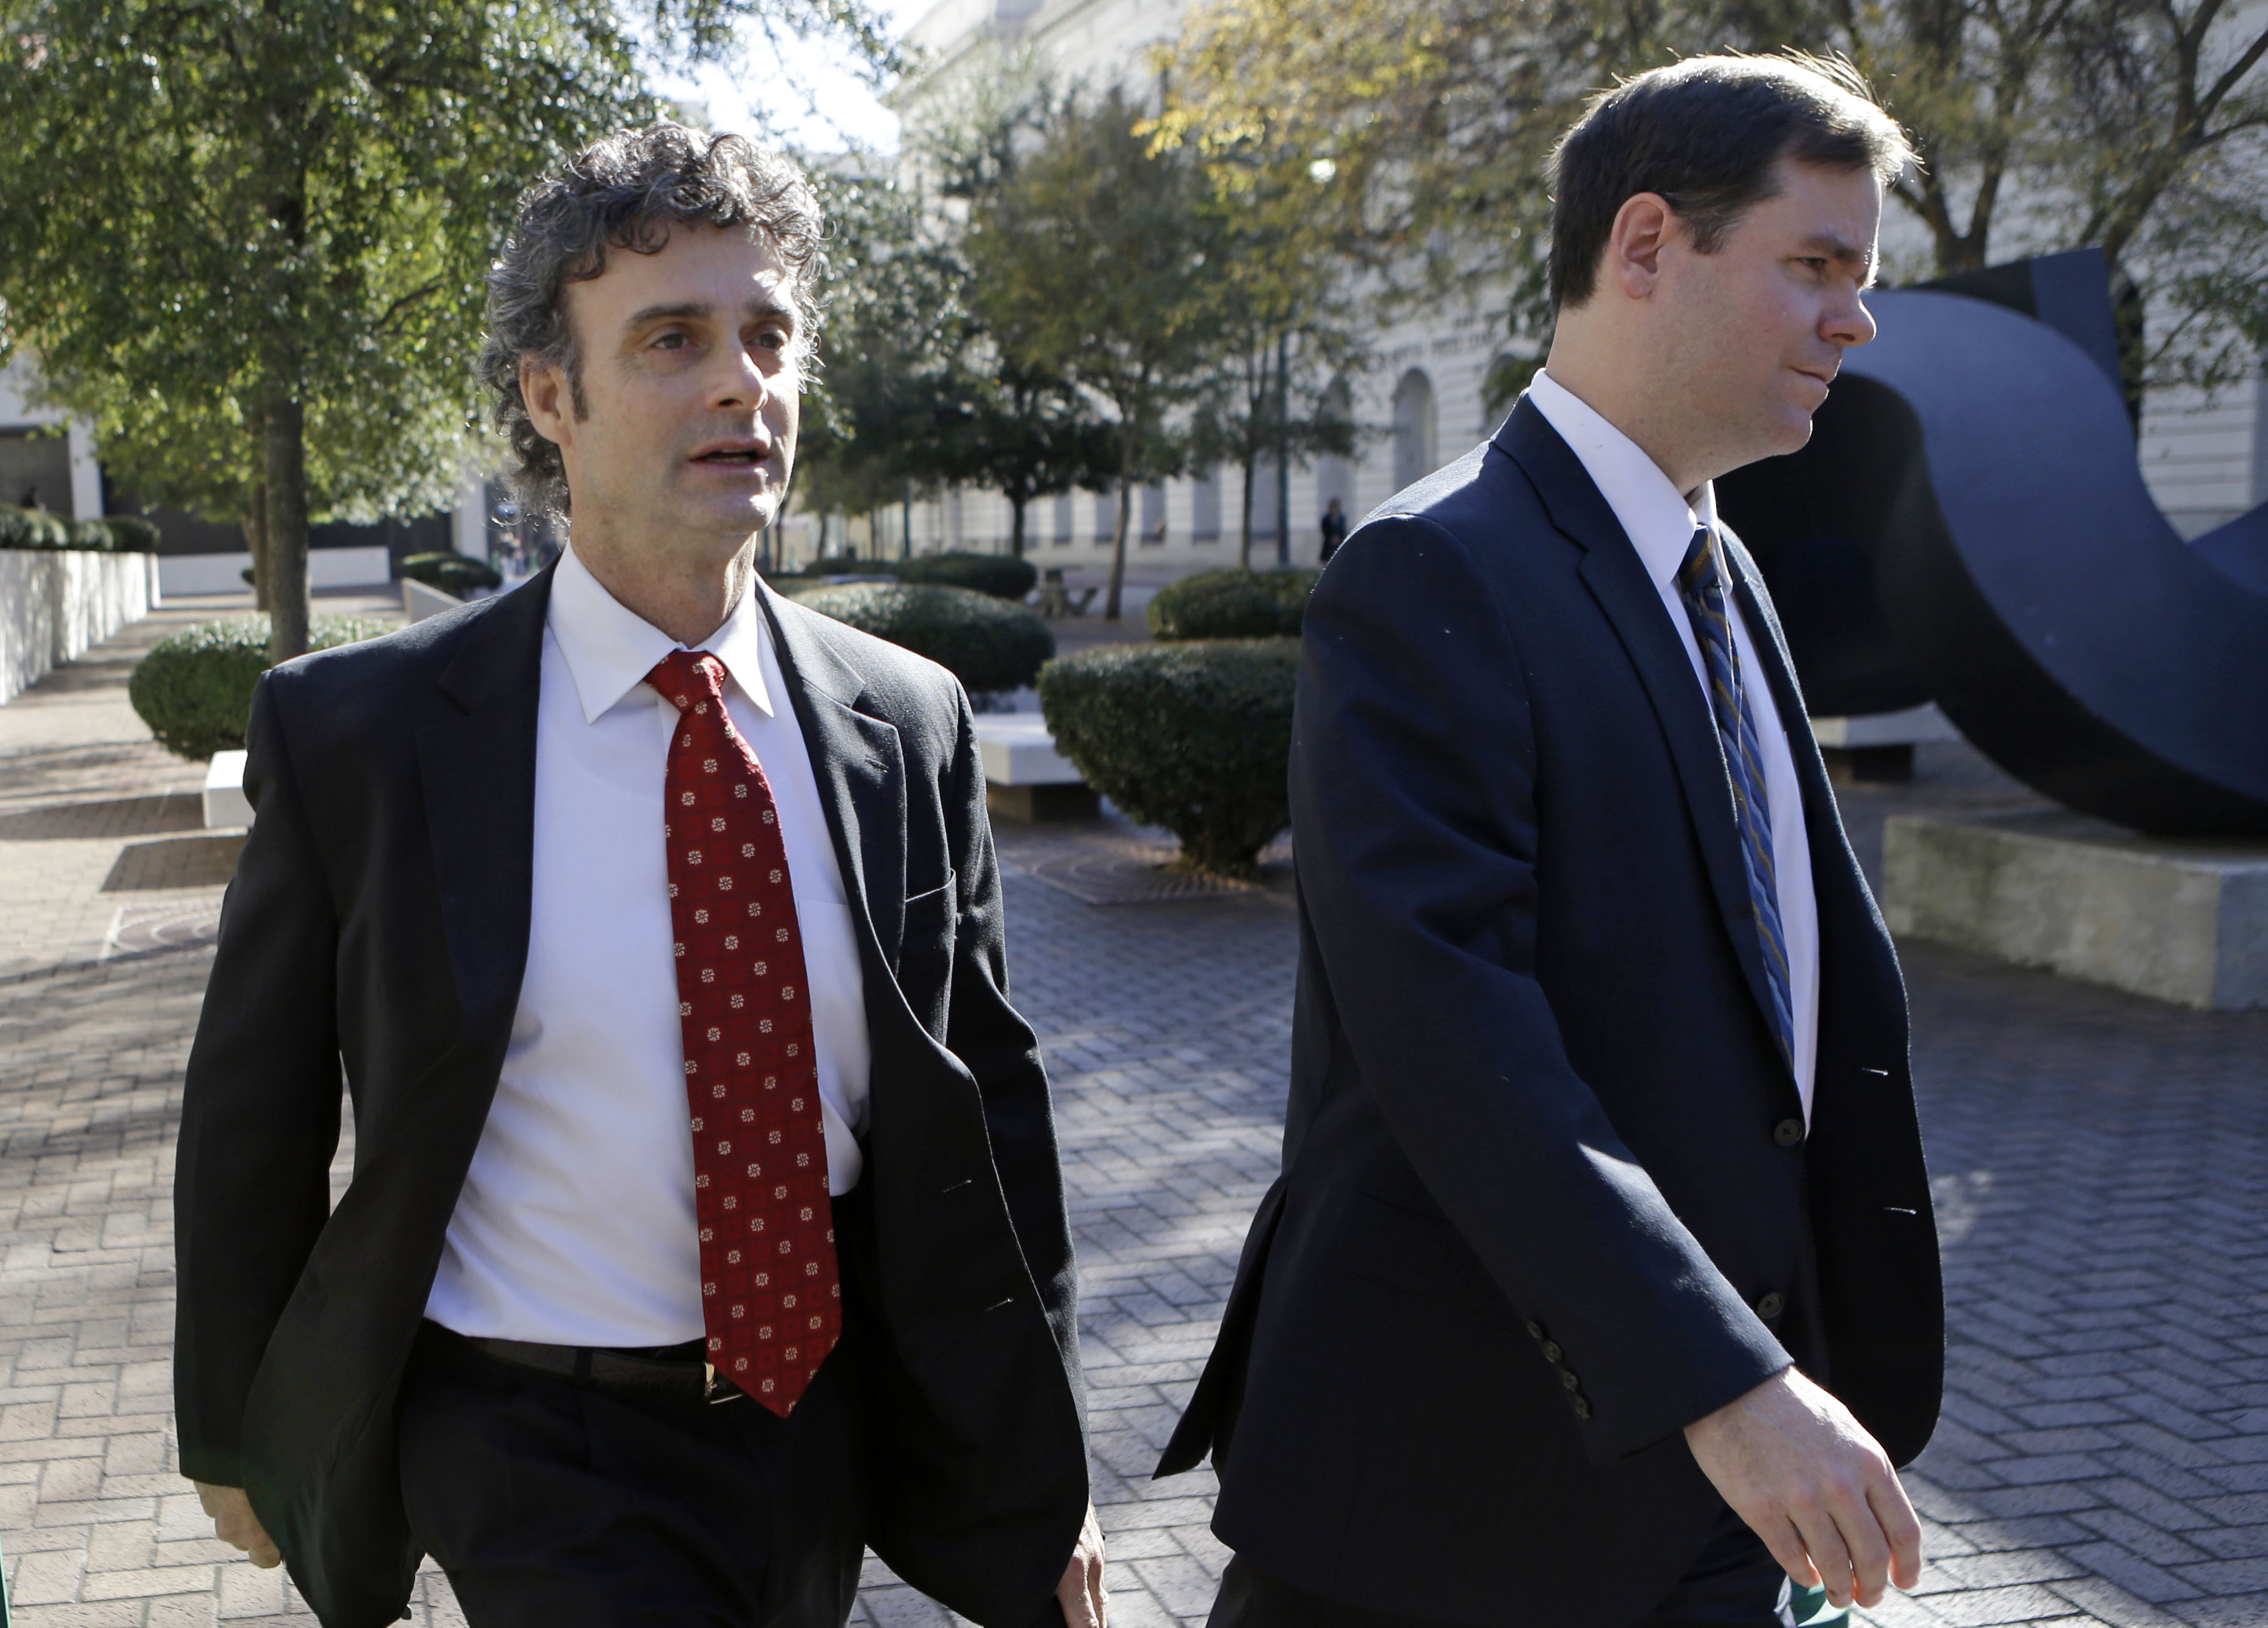 Kurt Mix, left, leaves Federal Court with an unidentified member of his defense team in New Orleans on Dec. 18, 2013.